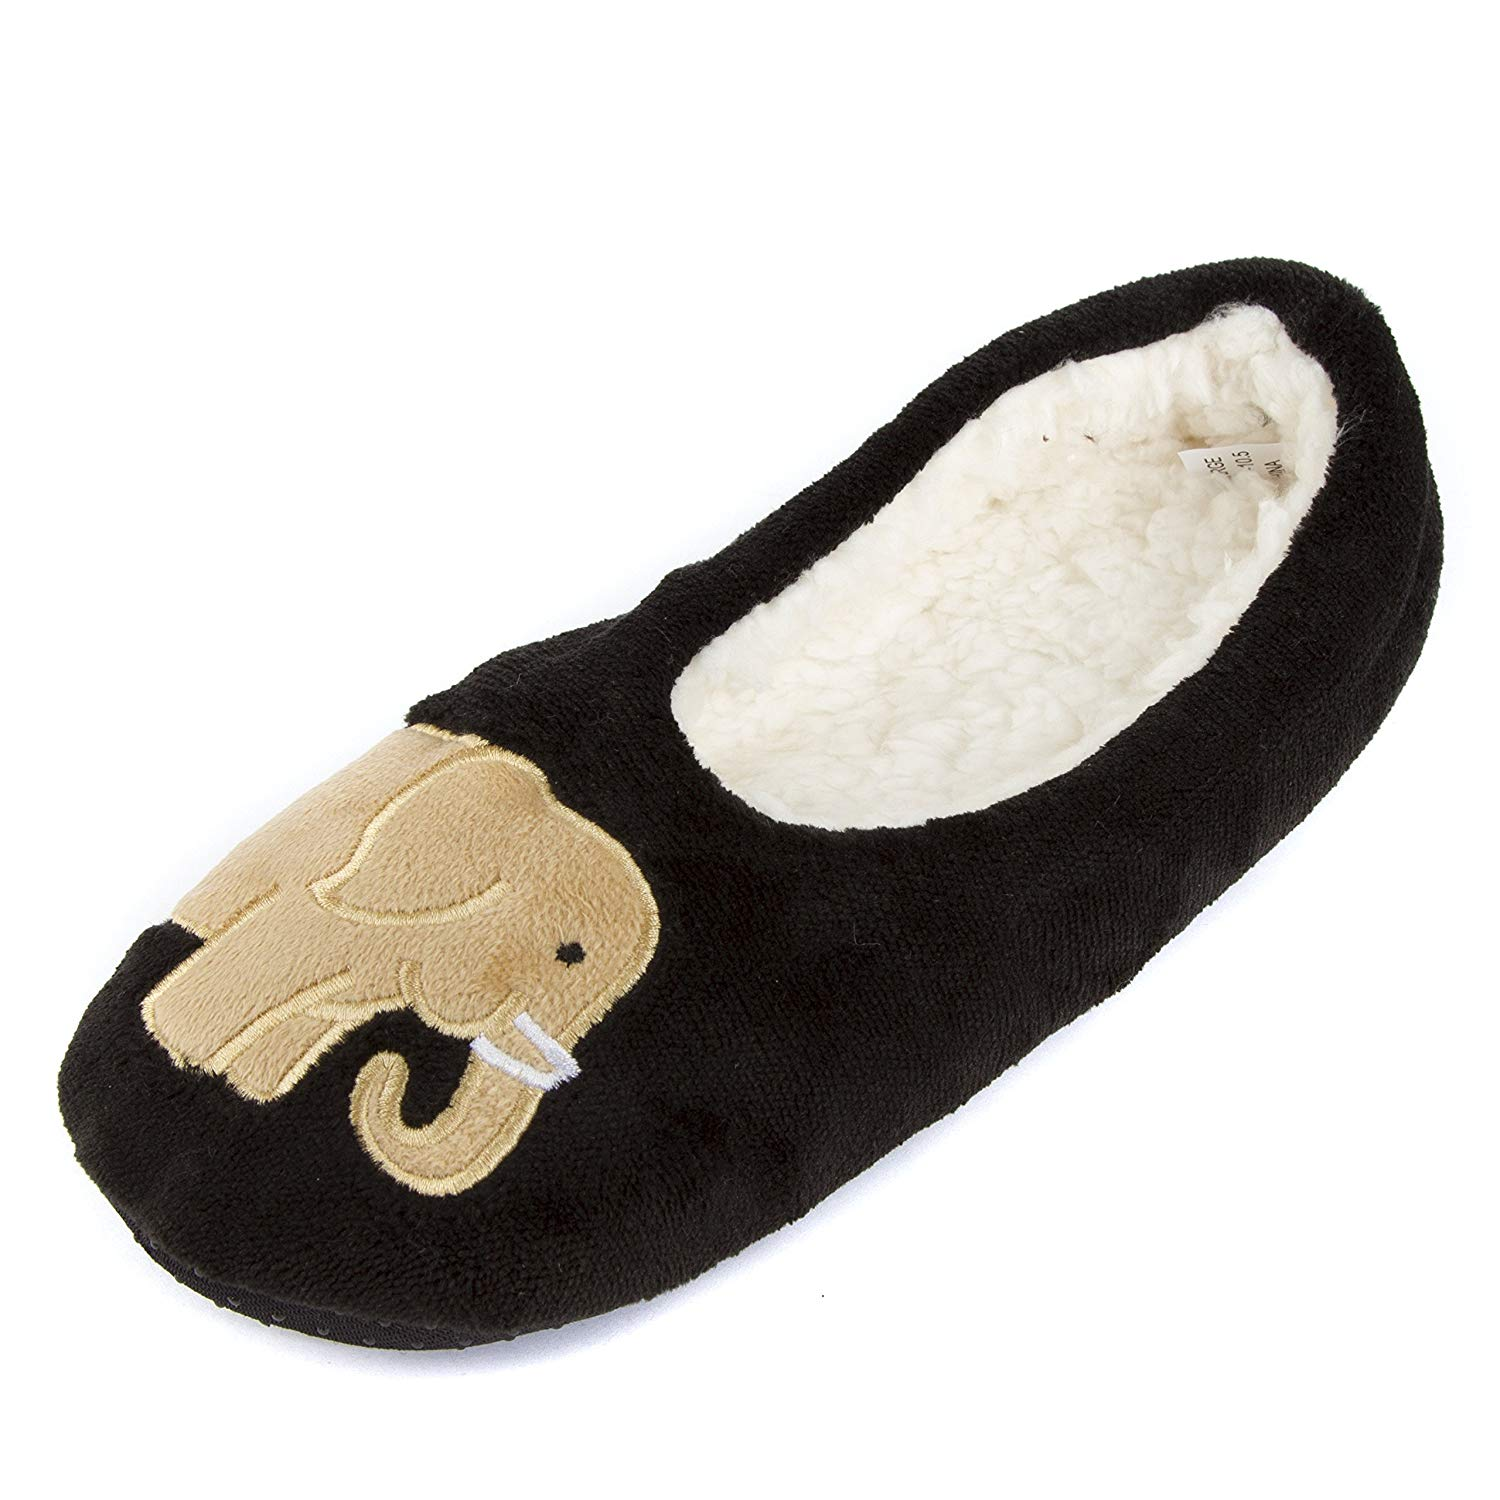 24bb22d511af Buy Leisureland Women  39 s Fleece Lined Cozy Slippers Embroidery Elephent  in Cheap Price on m.alibaba.com